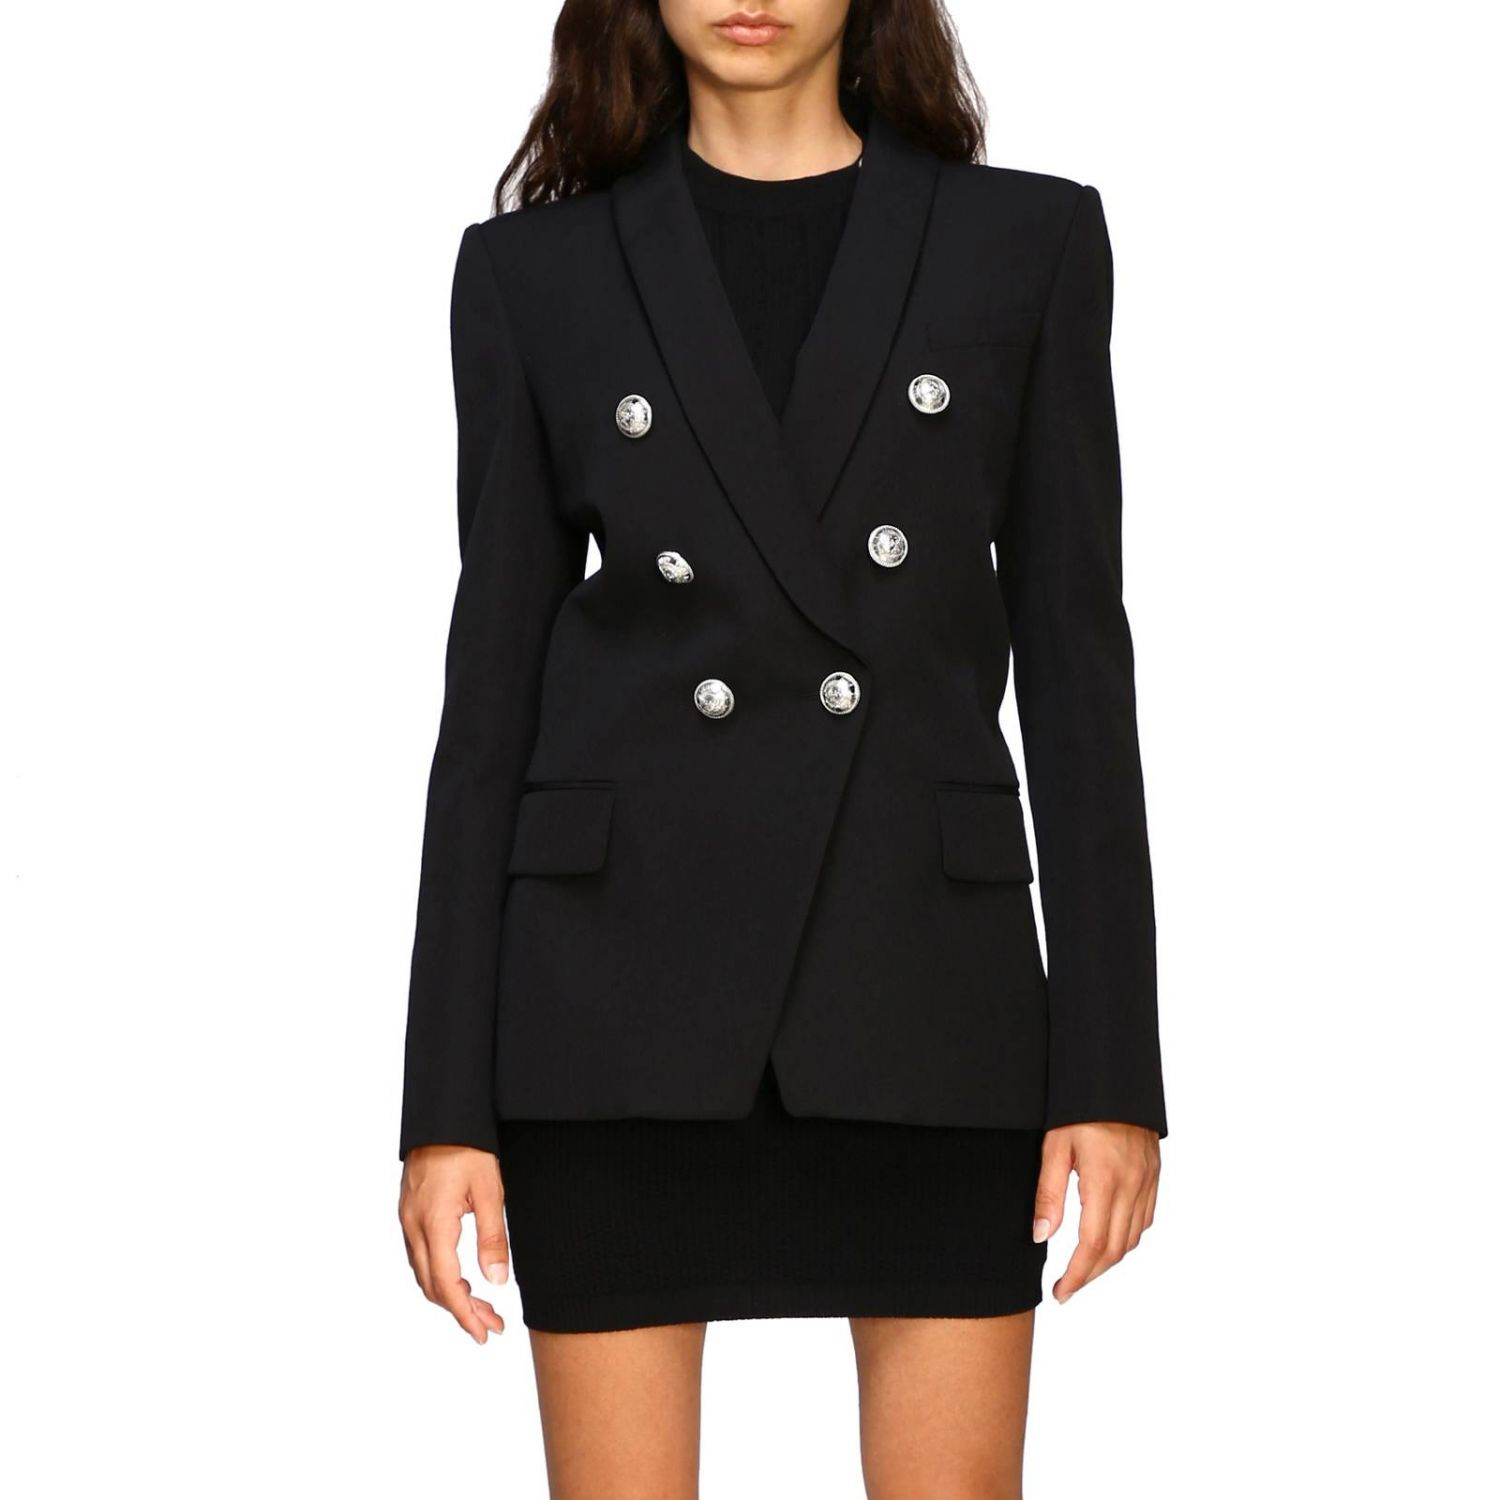 Balmain double-breasted blazer with jewel buttons black 1